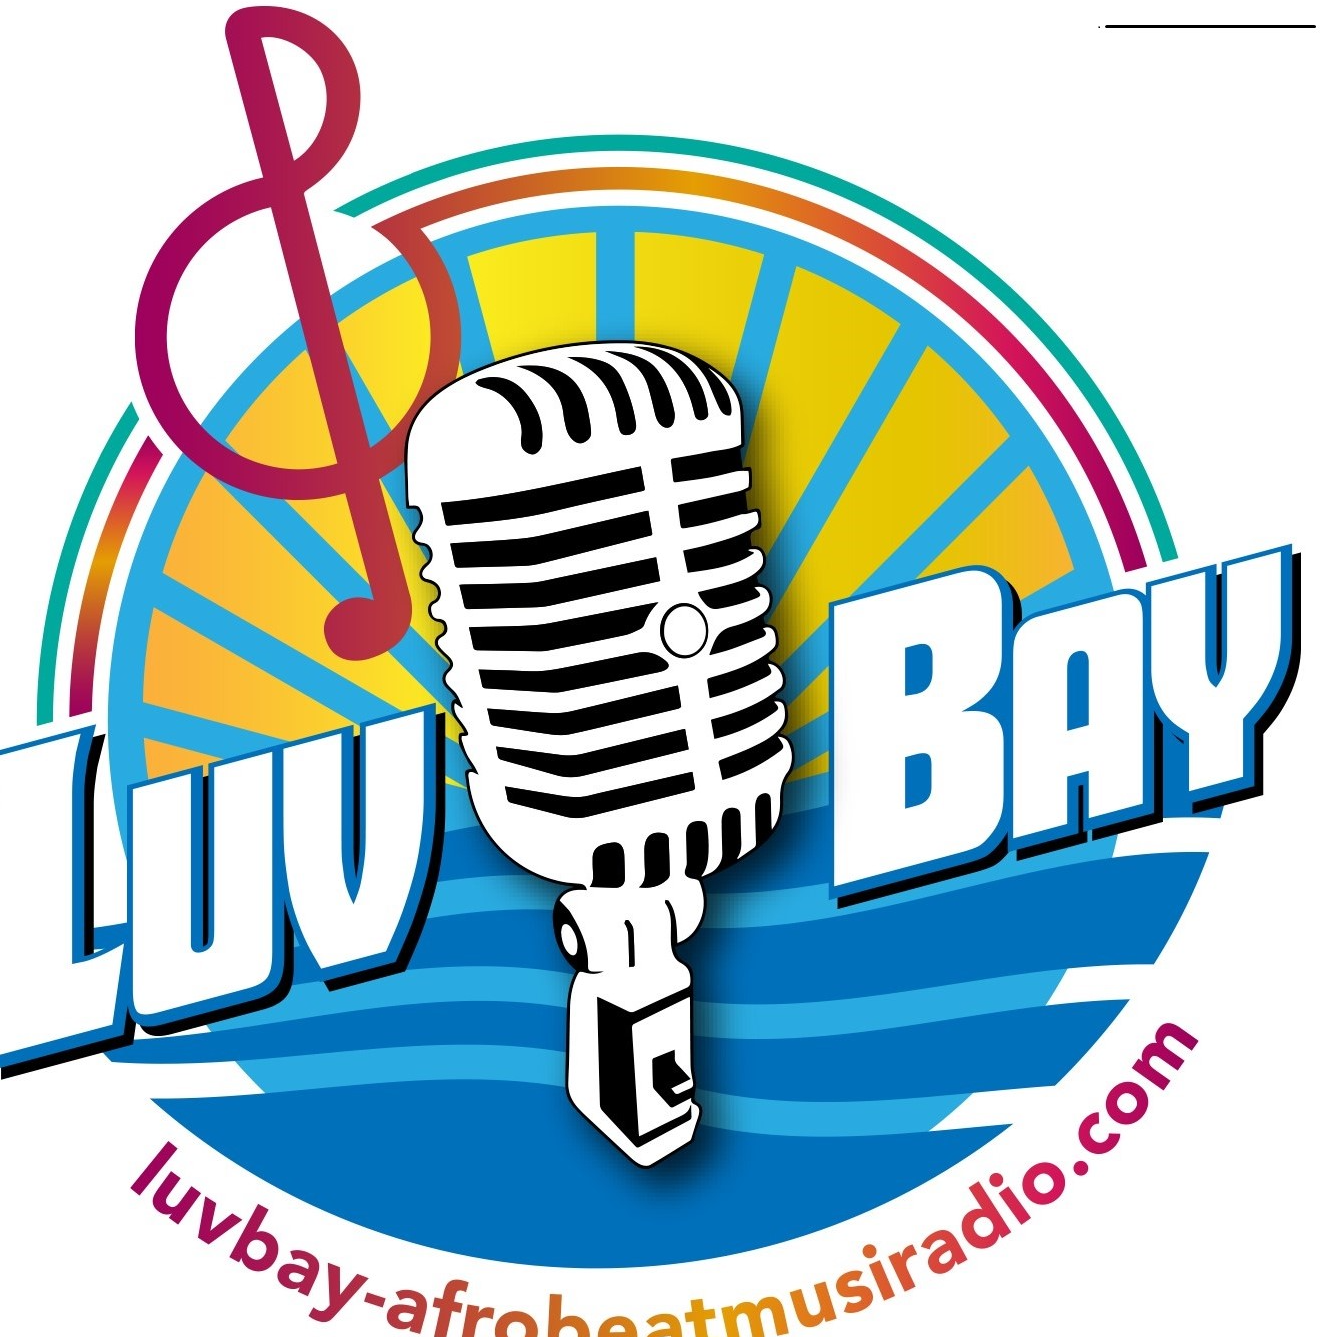 LuvBay Afrobeat Music Talk Radio